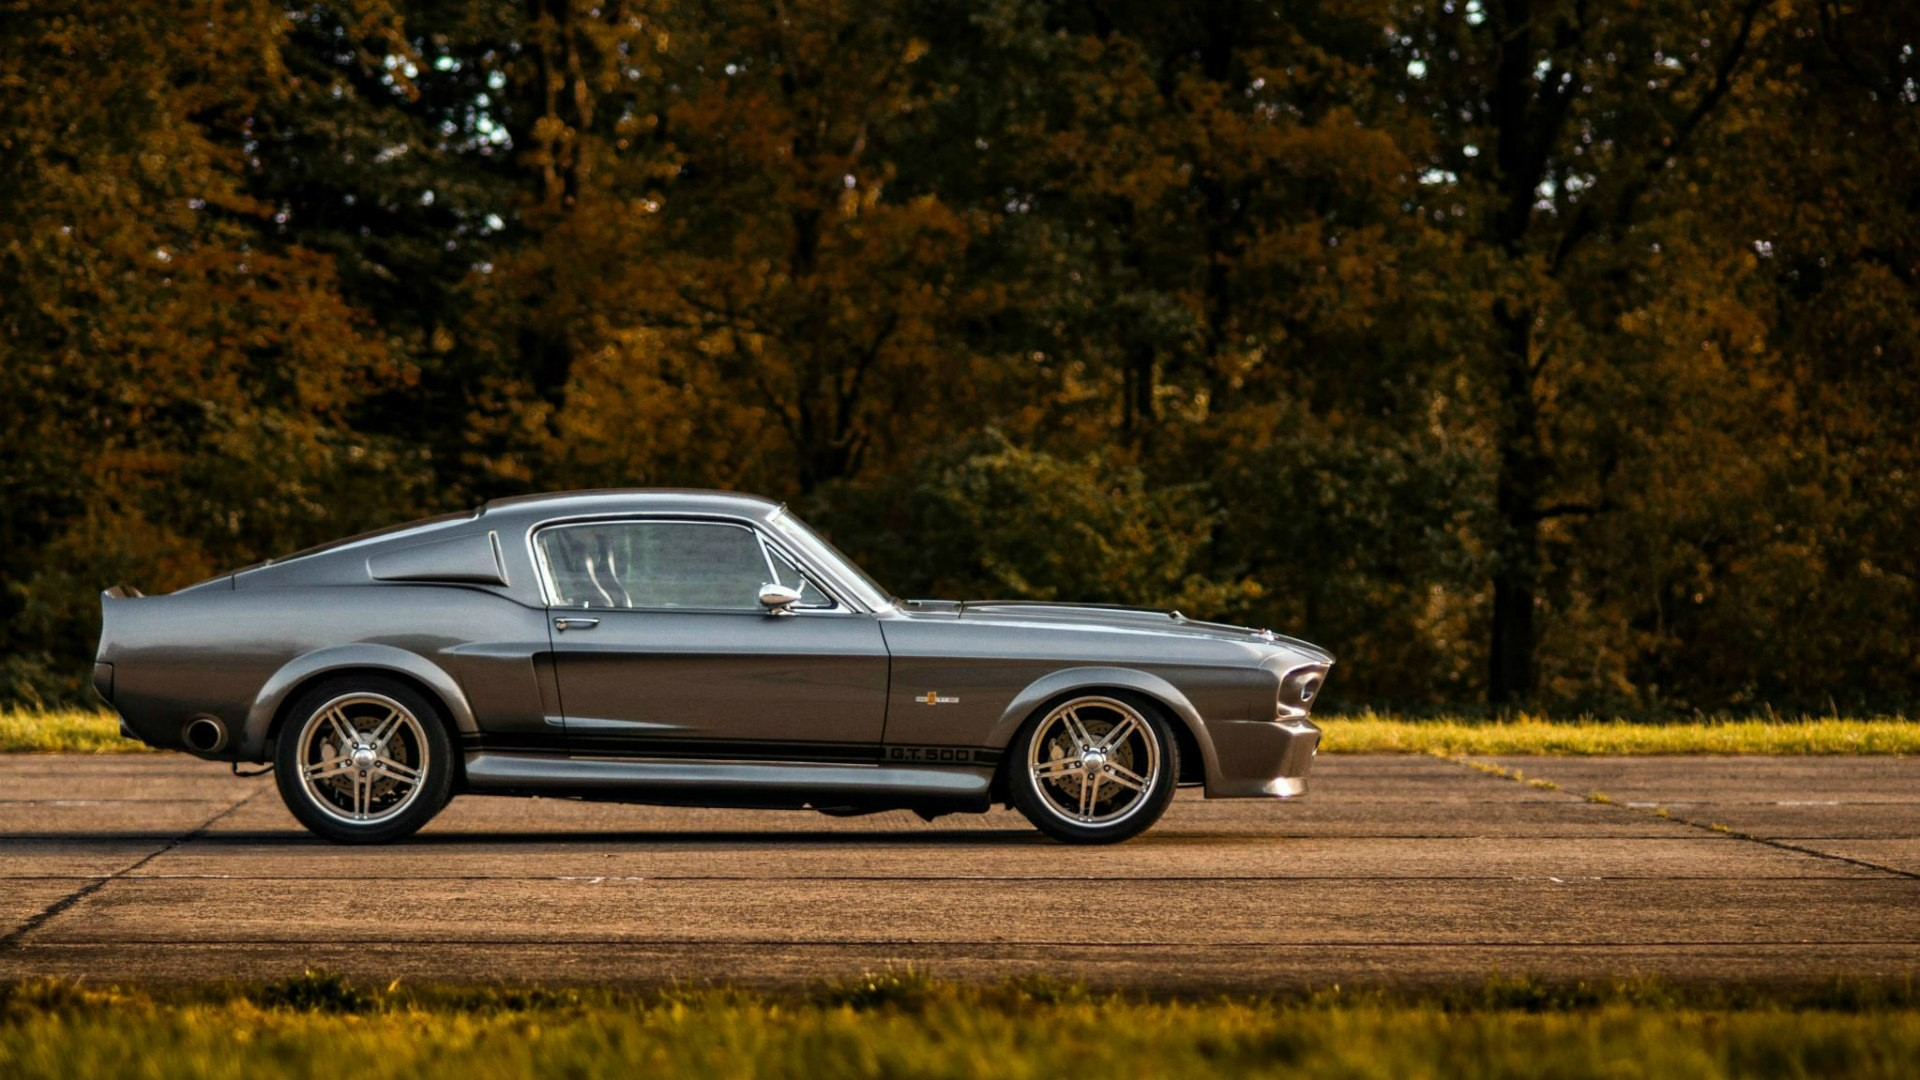 ford mustang shelby gt500 full hd wallpaper and background image